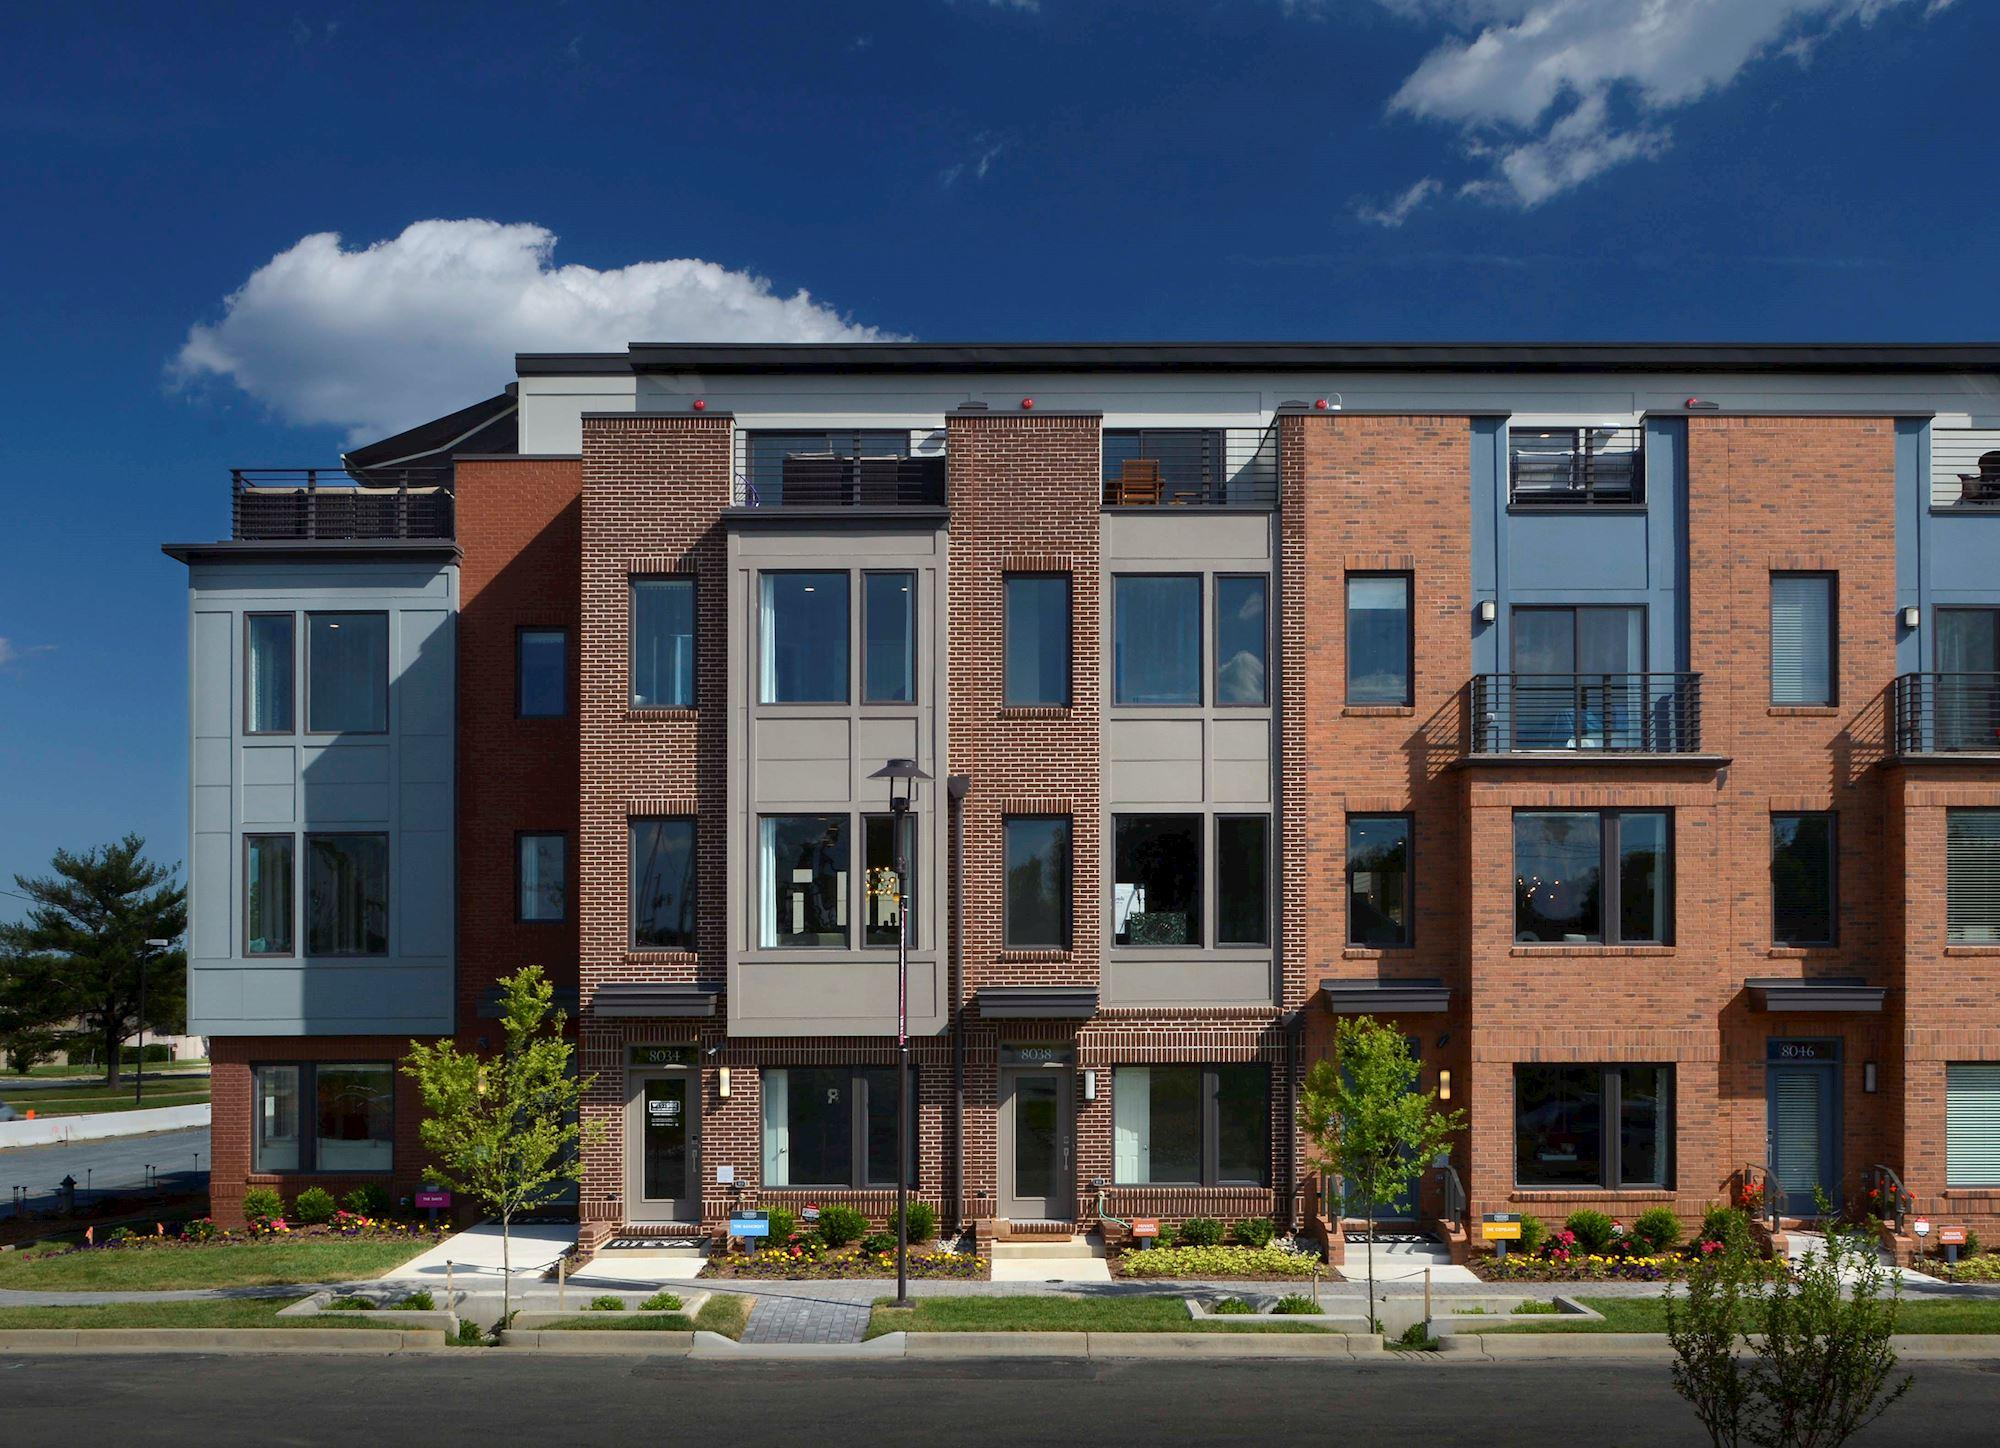 Crabbs Branch Way For Sale Rockville MD Trulia - Apartments in rockville md near metro